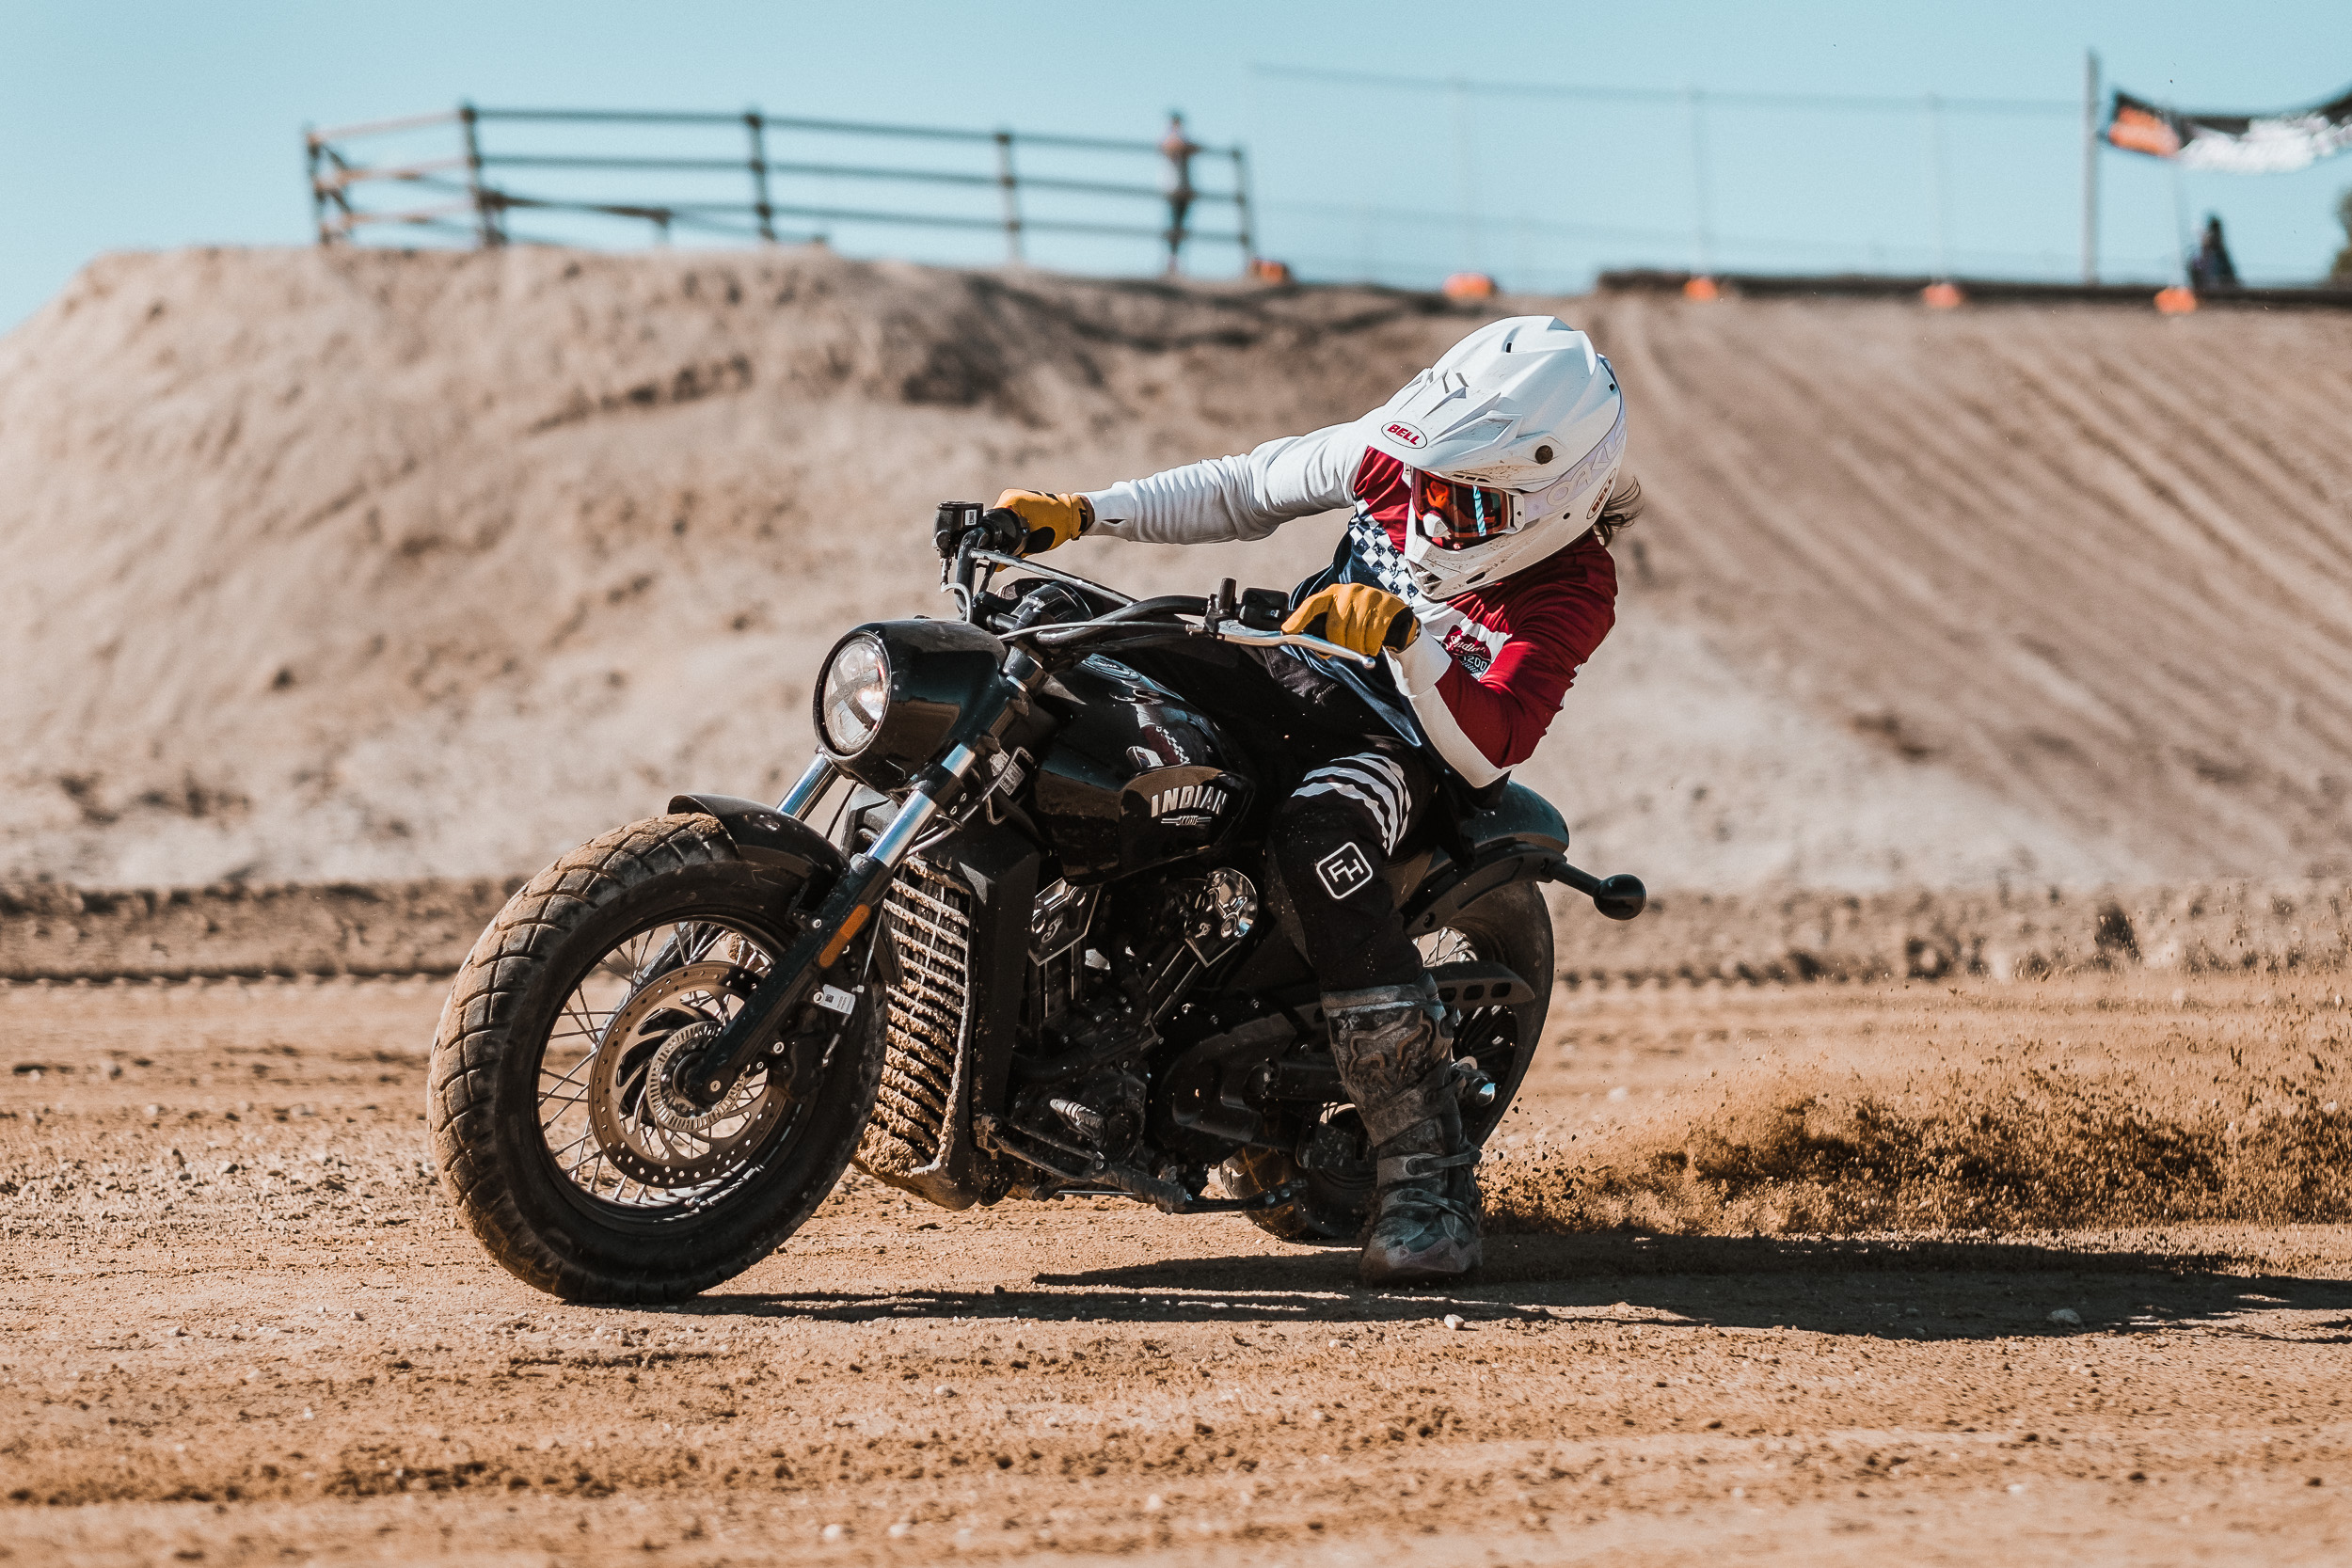 A motorcycle rider on an Indian Scout races on a dirt flat track circuit